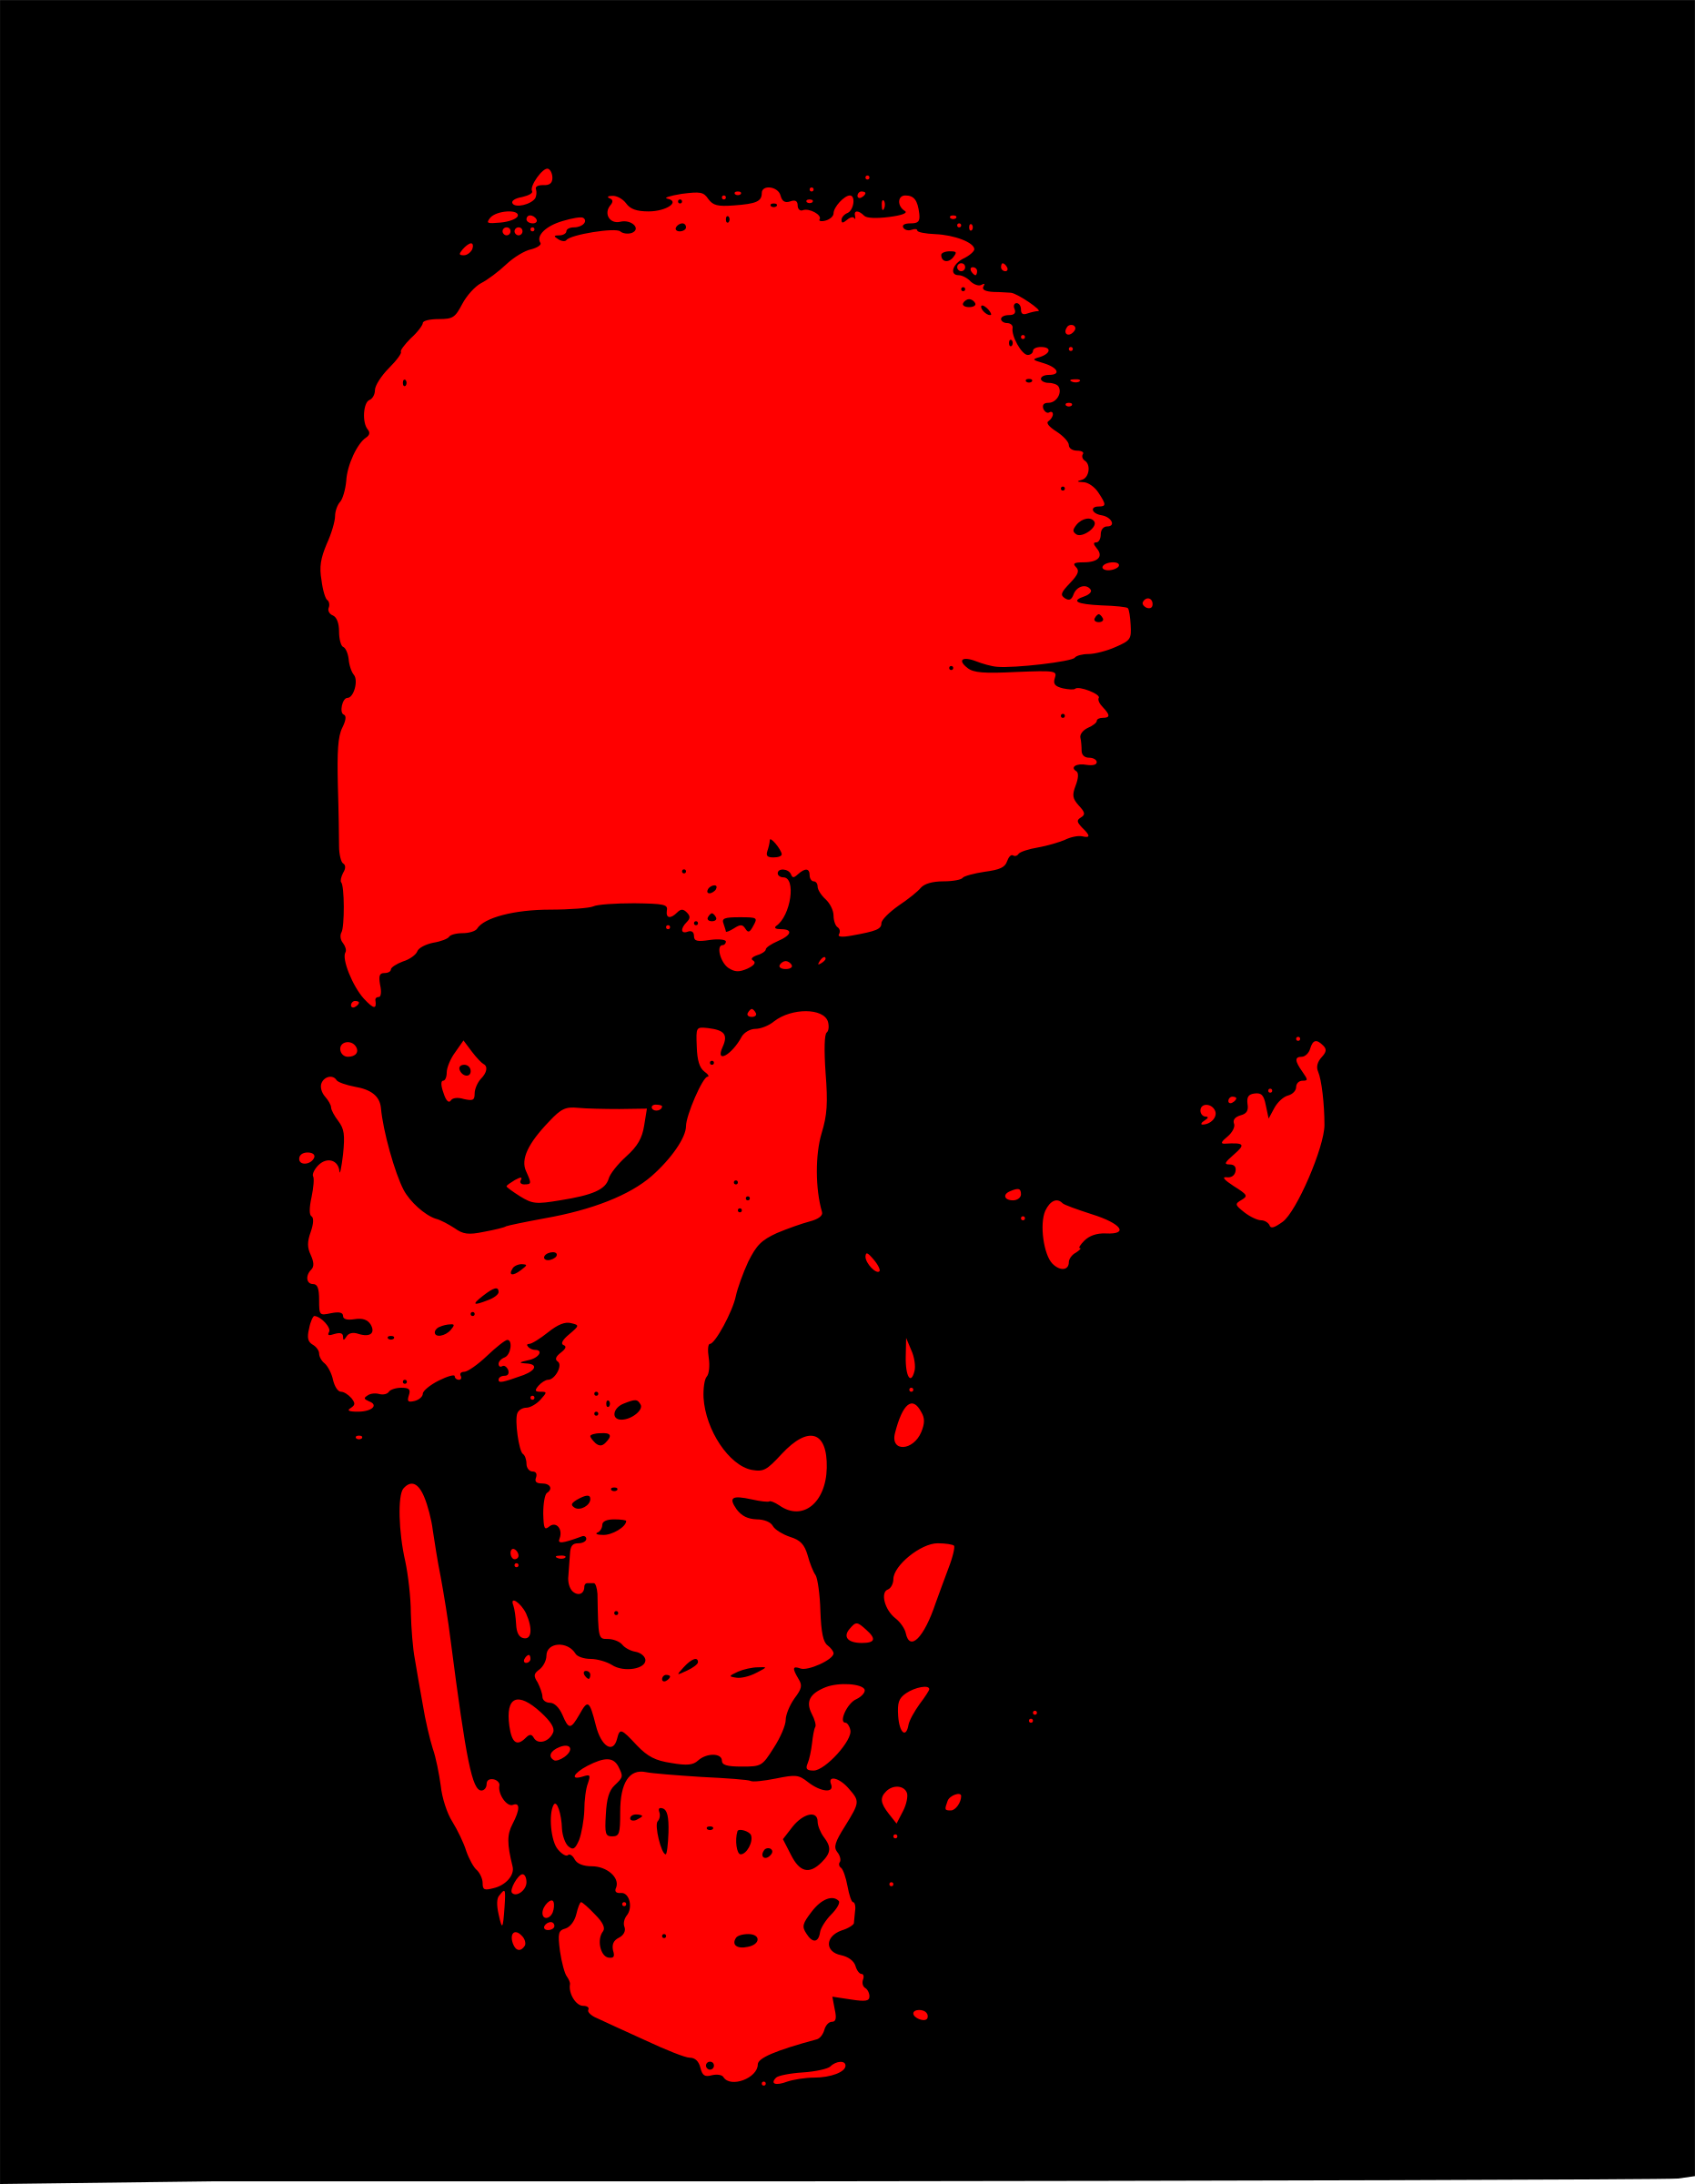 Red Skull by J_Alves